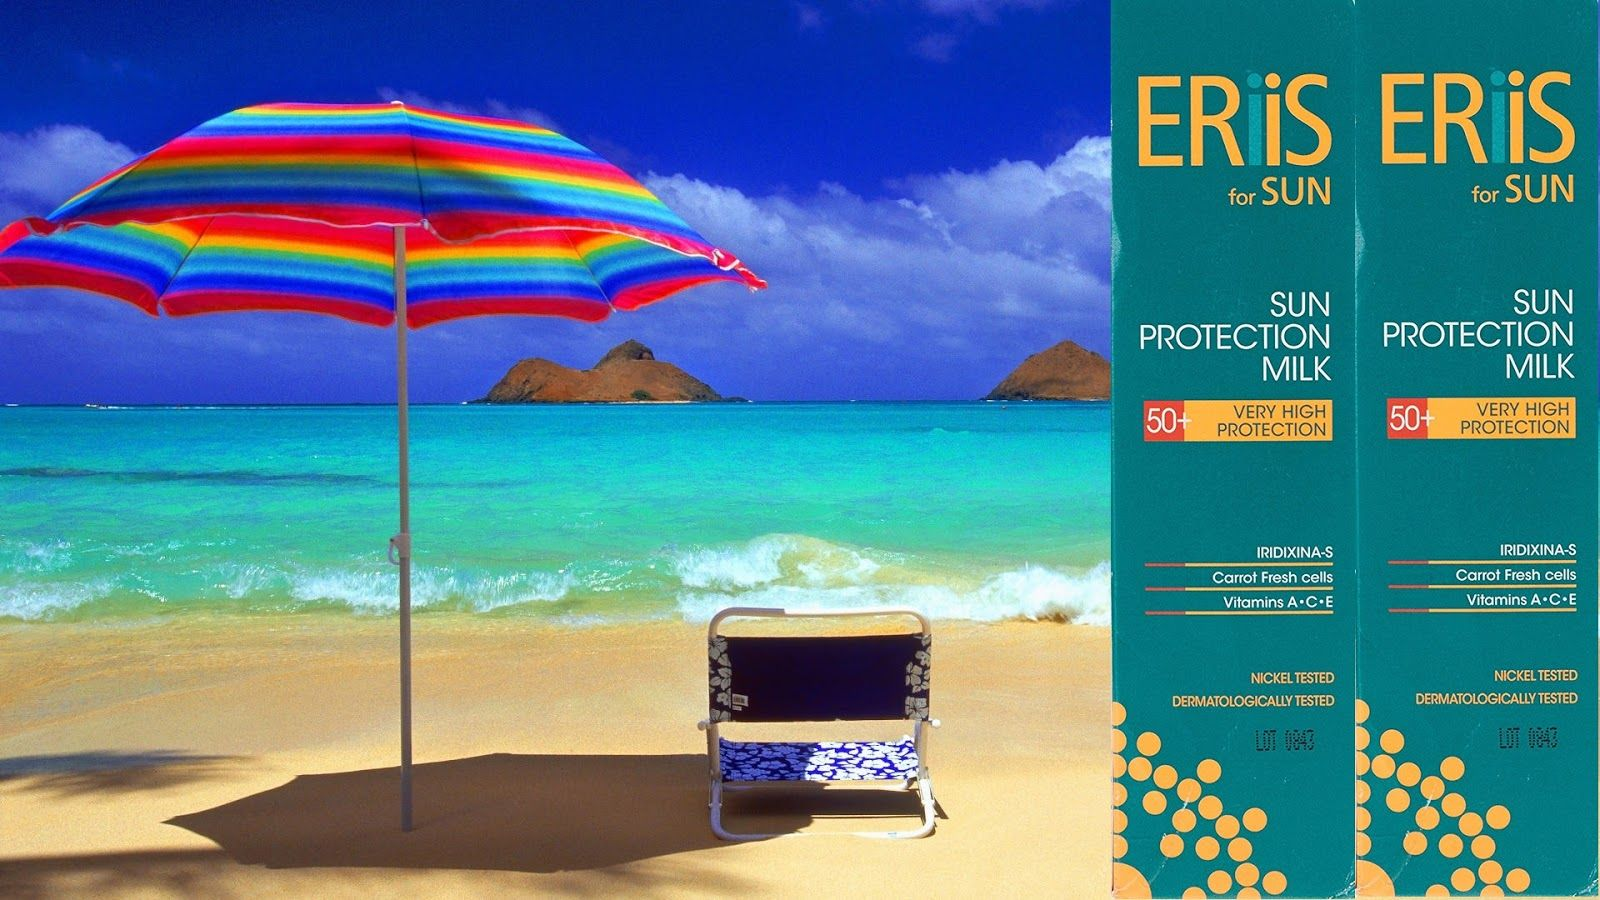 Eriis For Sun With Uva Uvb And Infrared Filters Spf50 Tropical Paradise Wallpaper Hawaii Beaches Beach Desktop wallpaper uva wallpaper